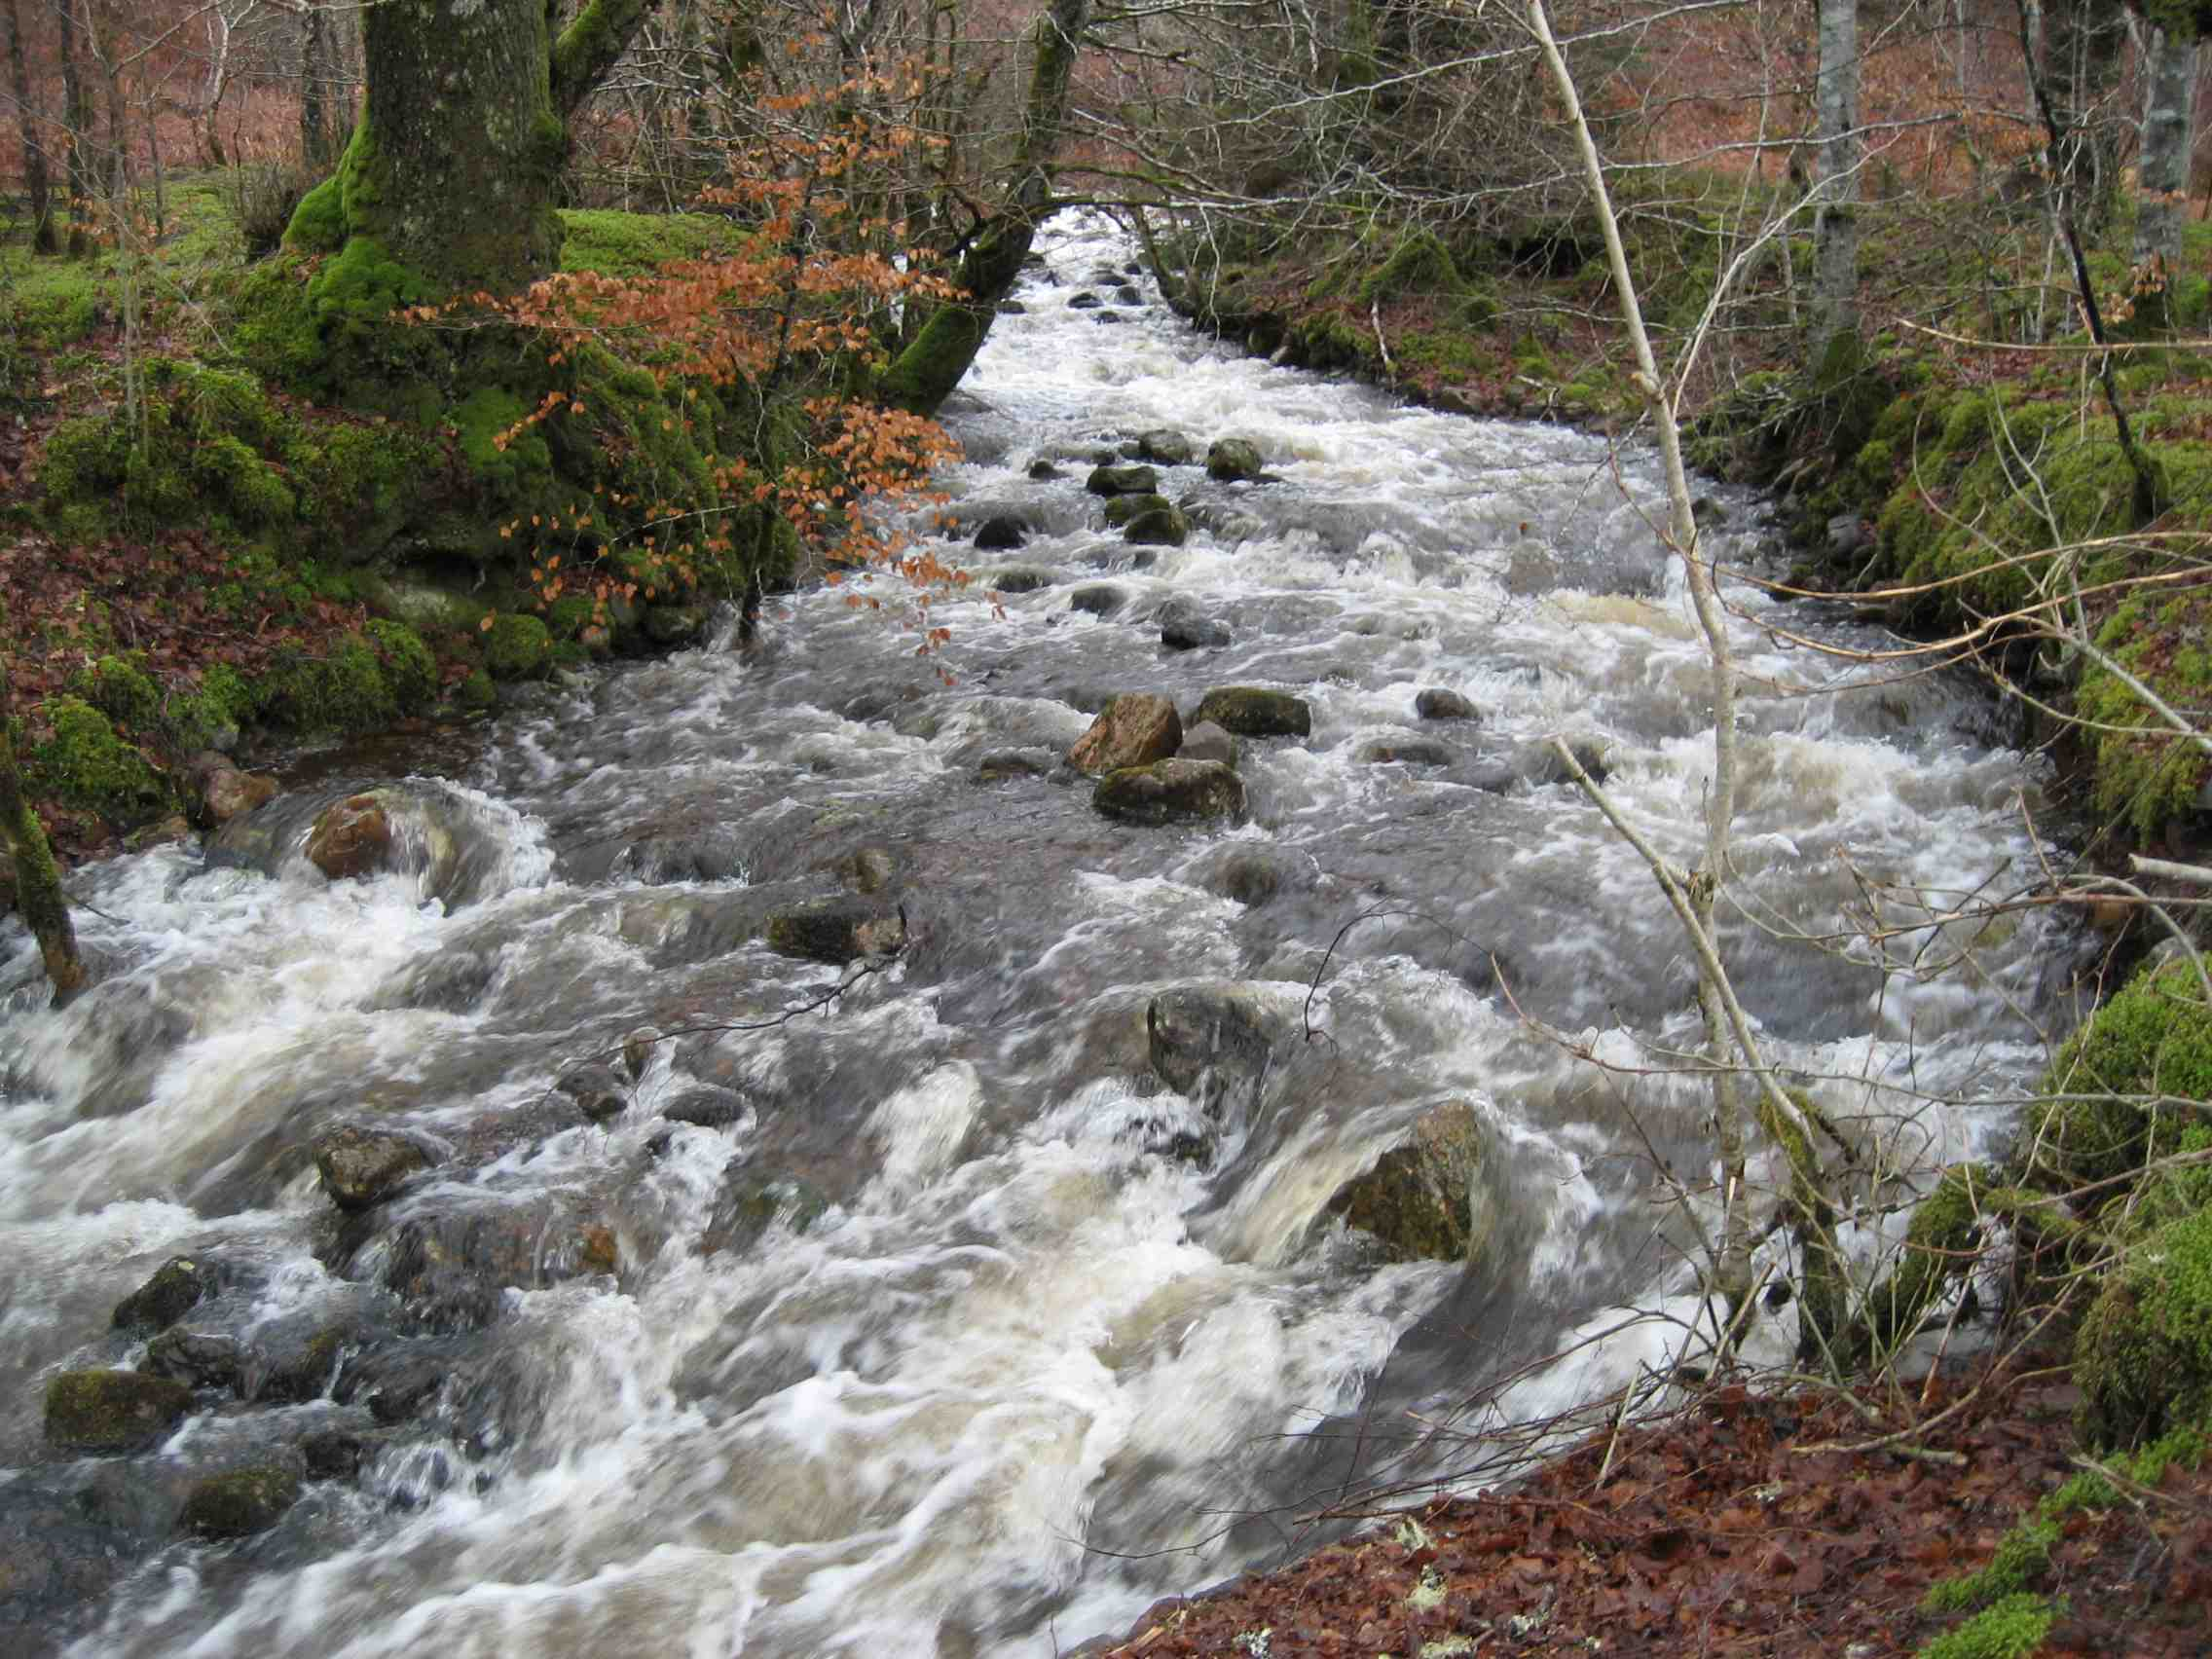 The White Waters DS14%20Raging%20river